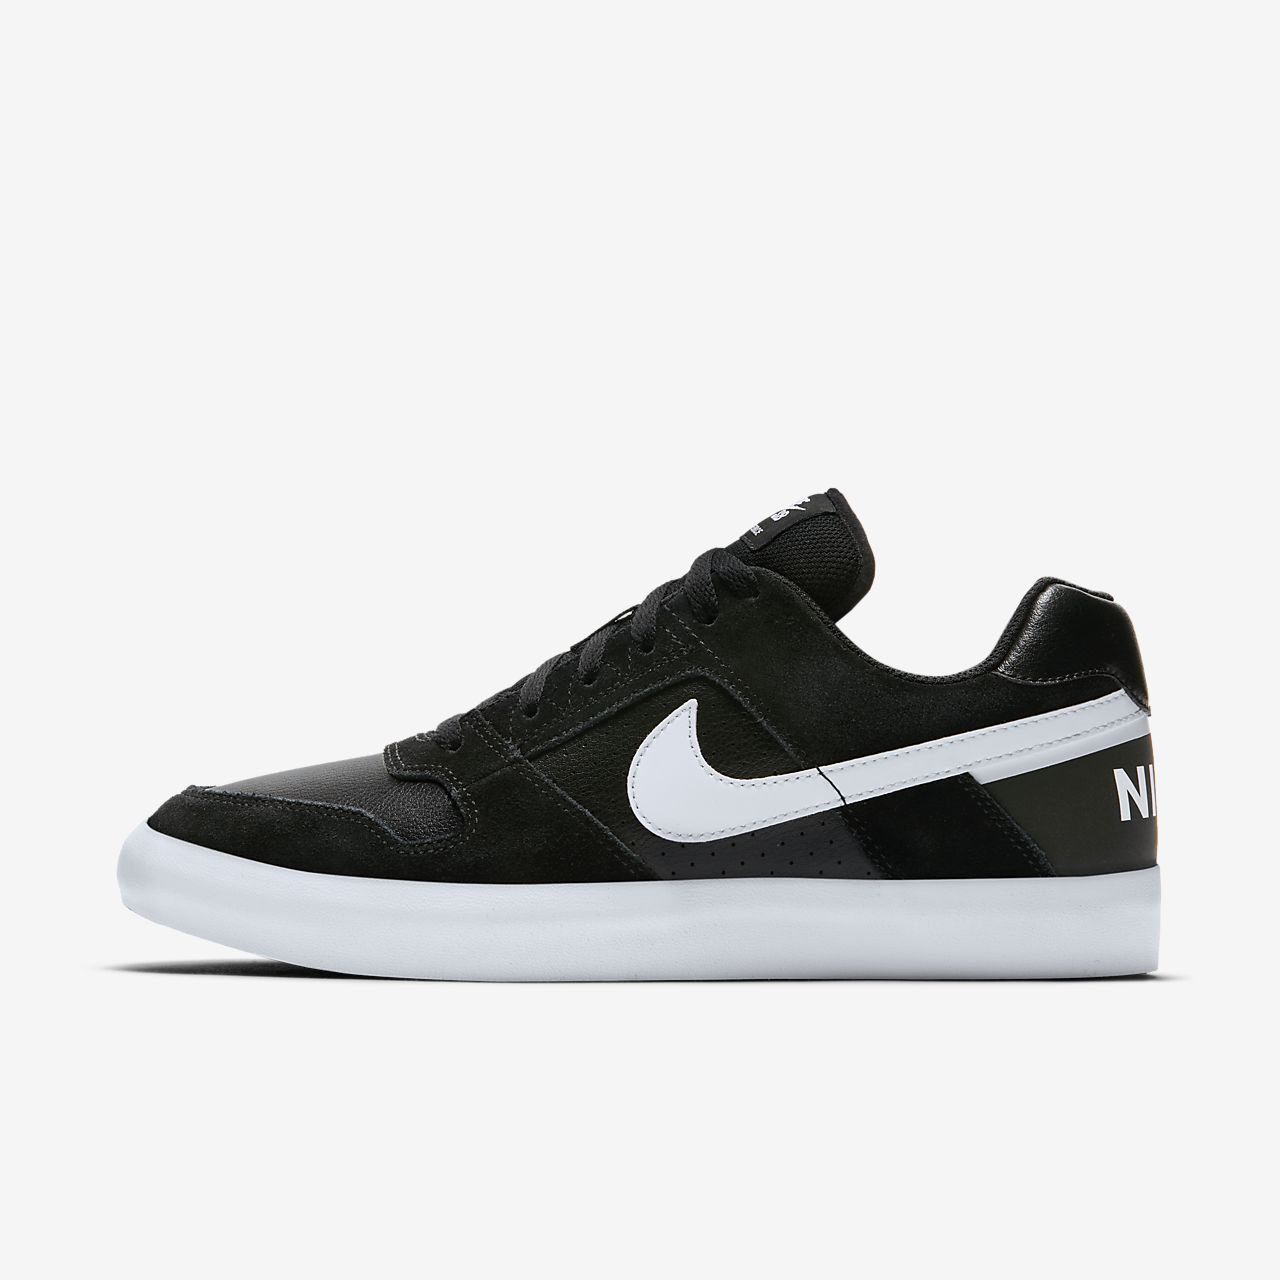 Noir Chaussures Nike Sb Collection Taille 42 Hommes sE5F0icmxT